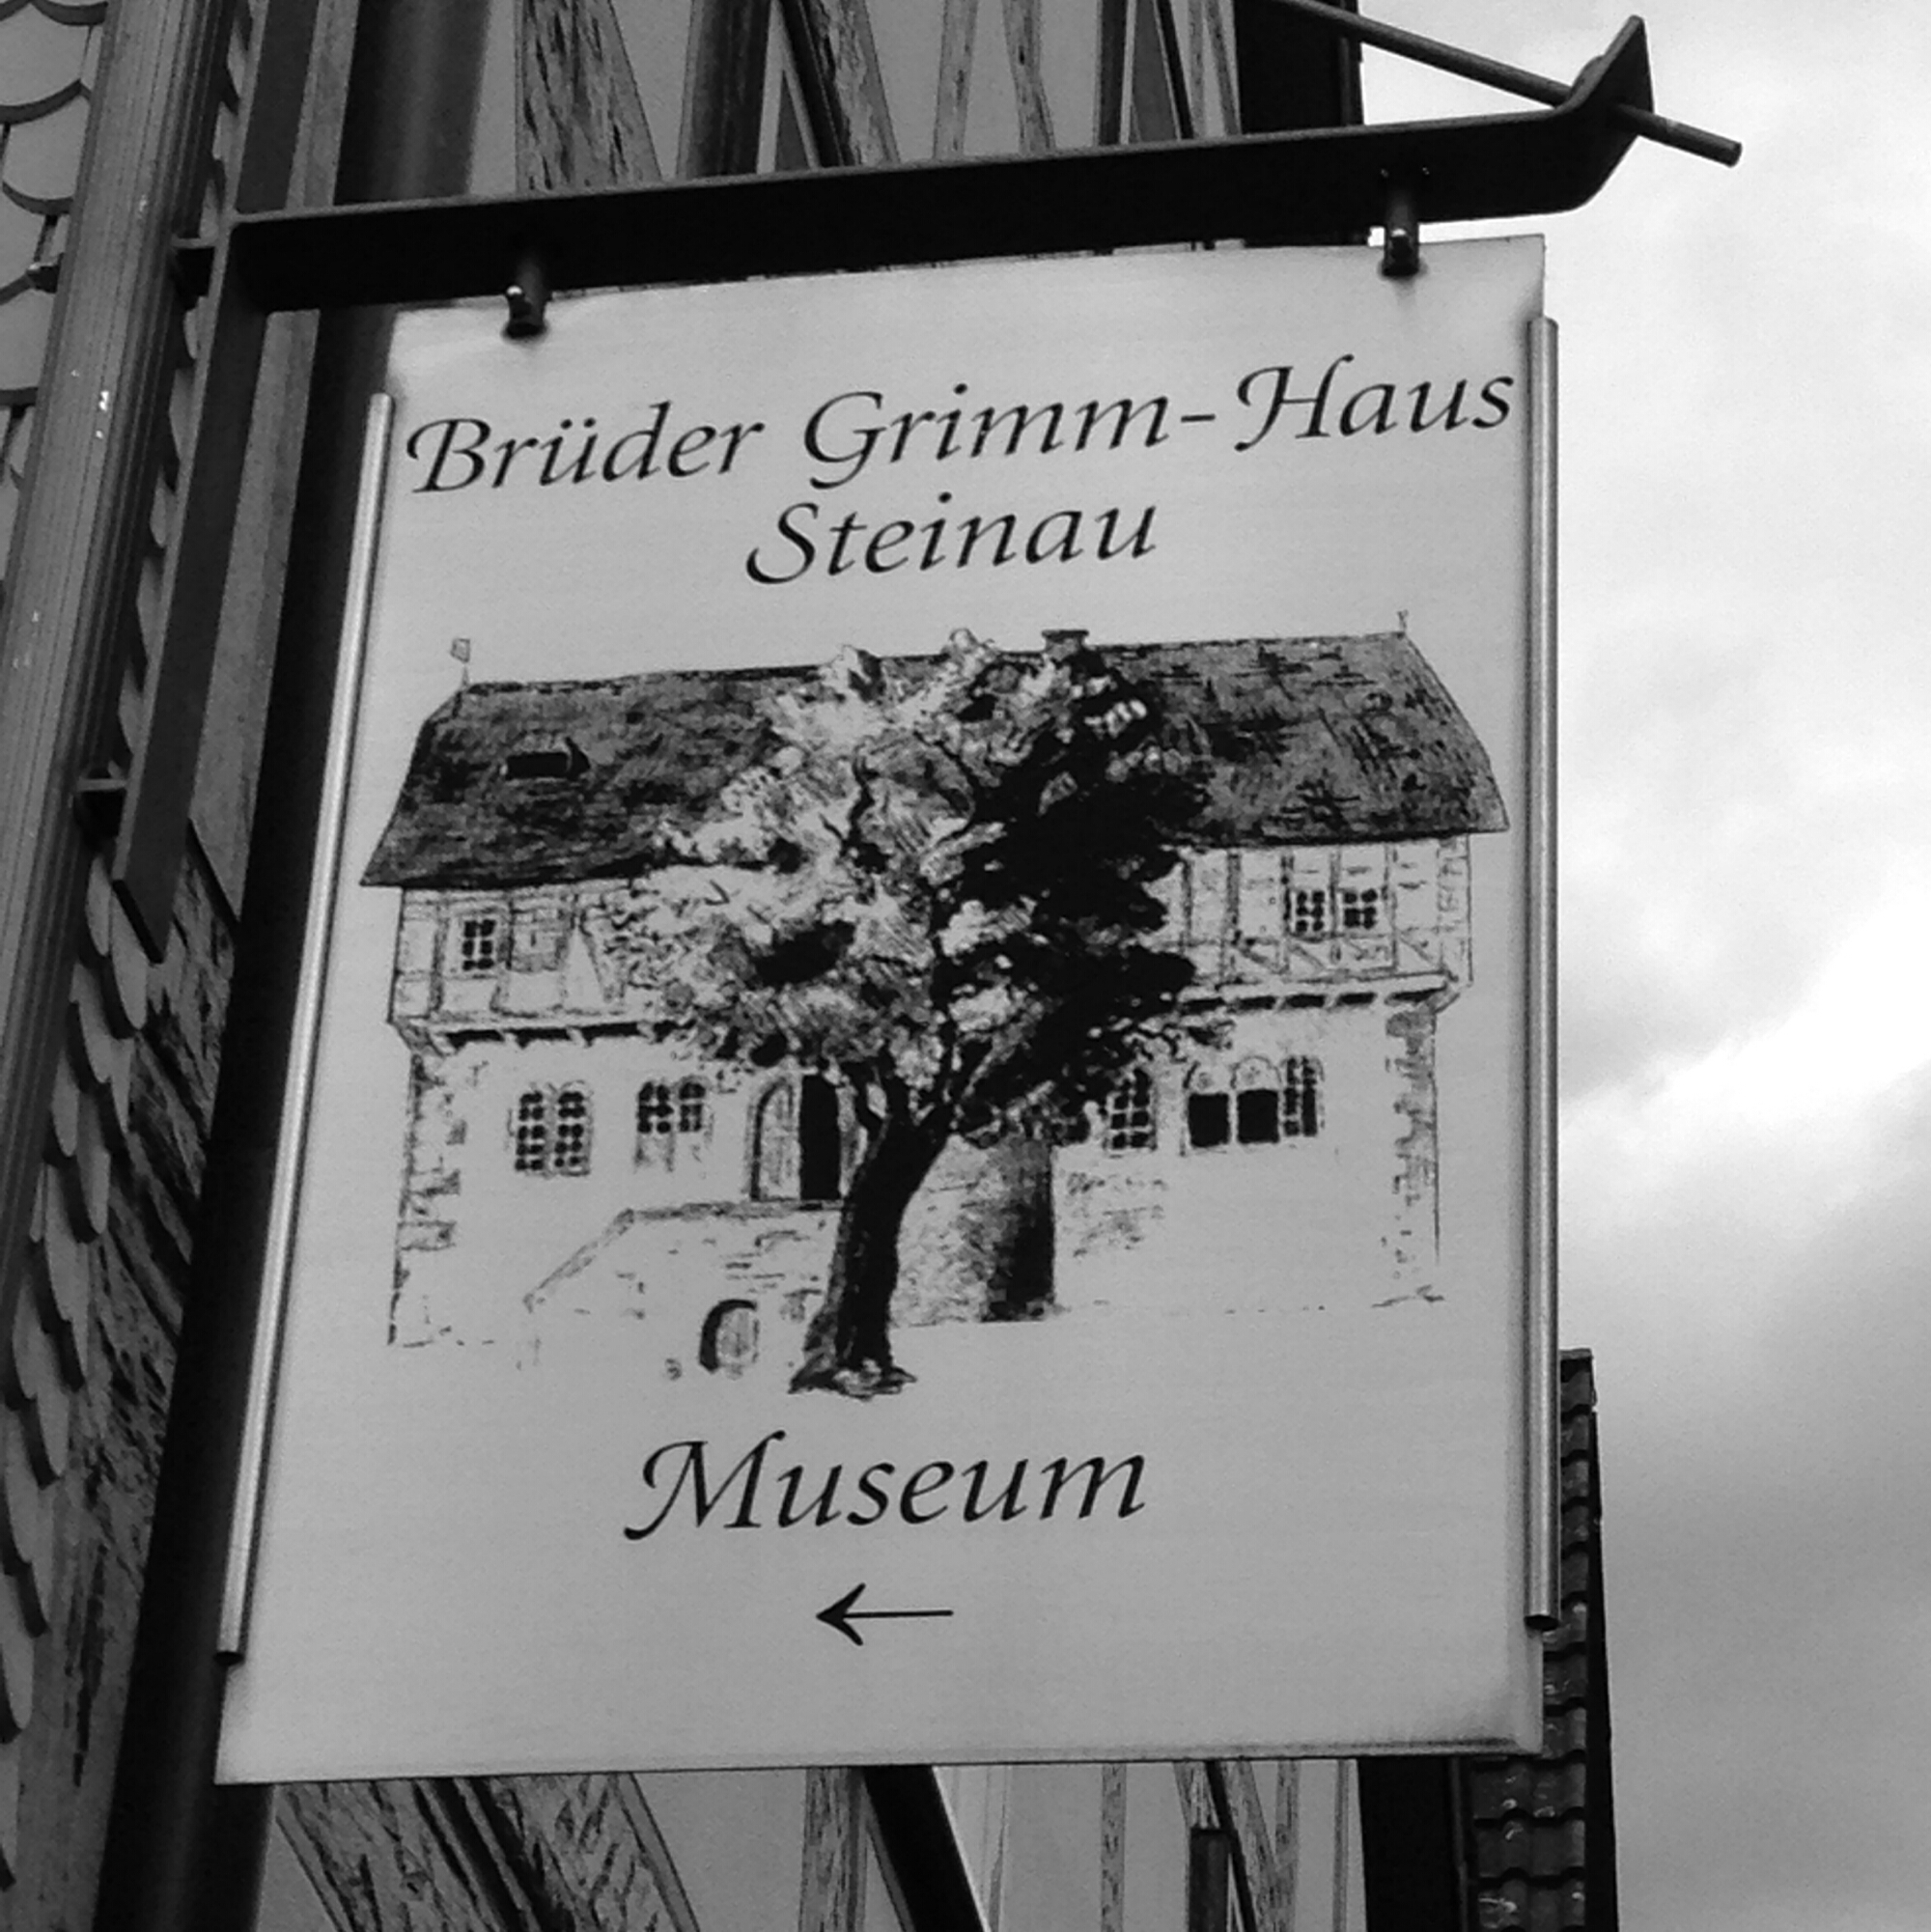 Brüder Grimm Haus and Museum Steinau The Fairy-Tale Road, Germany – the Fairytale Road – Southeastern Promises